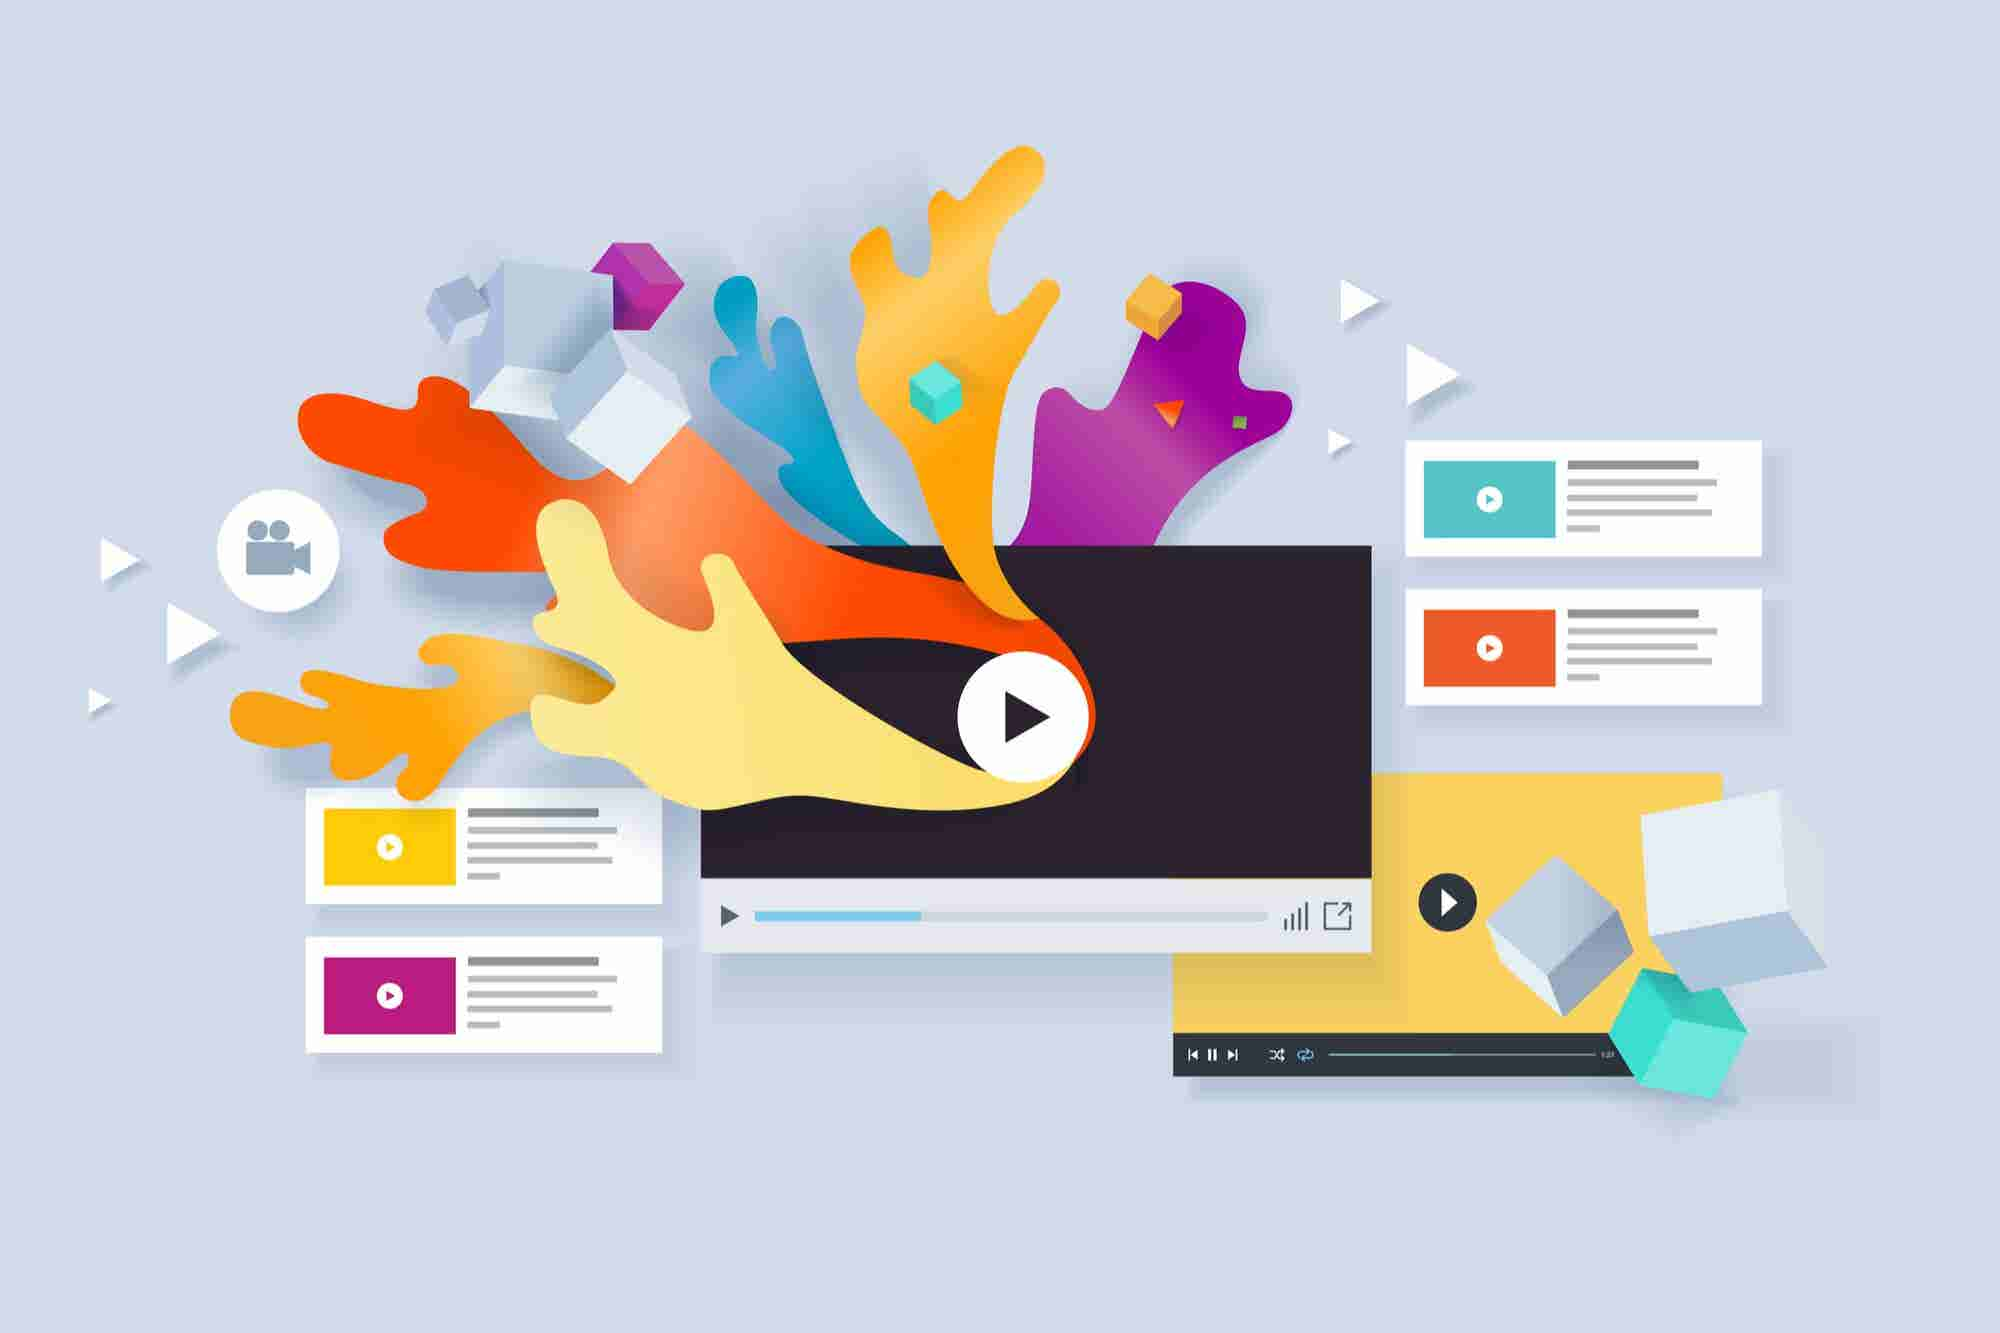 The Advertising Industry Doesn't Need More Data- It Needs More Creativity